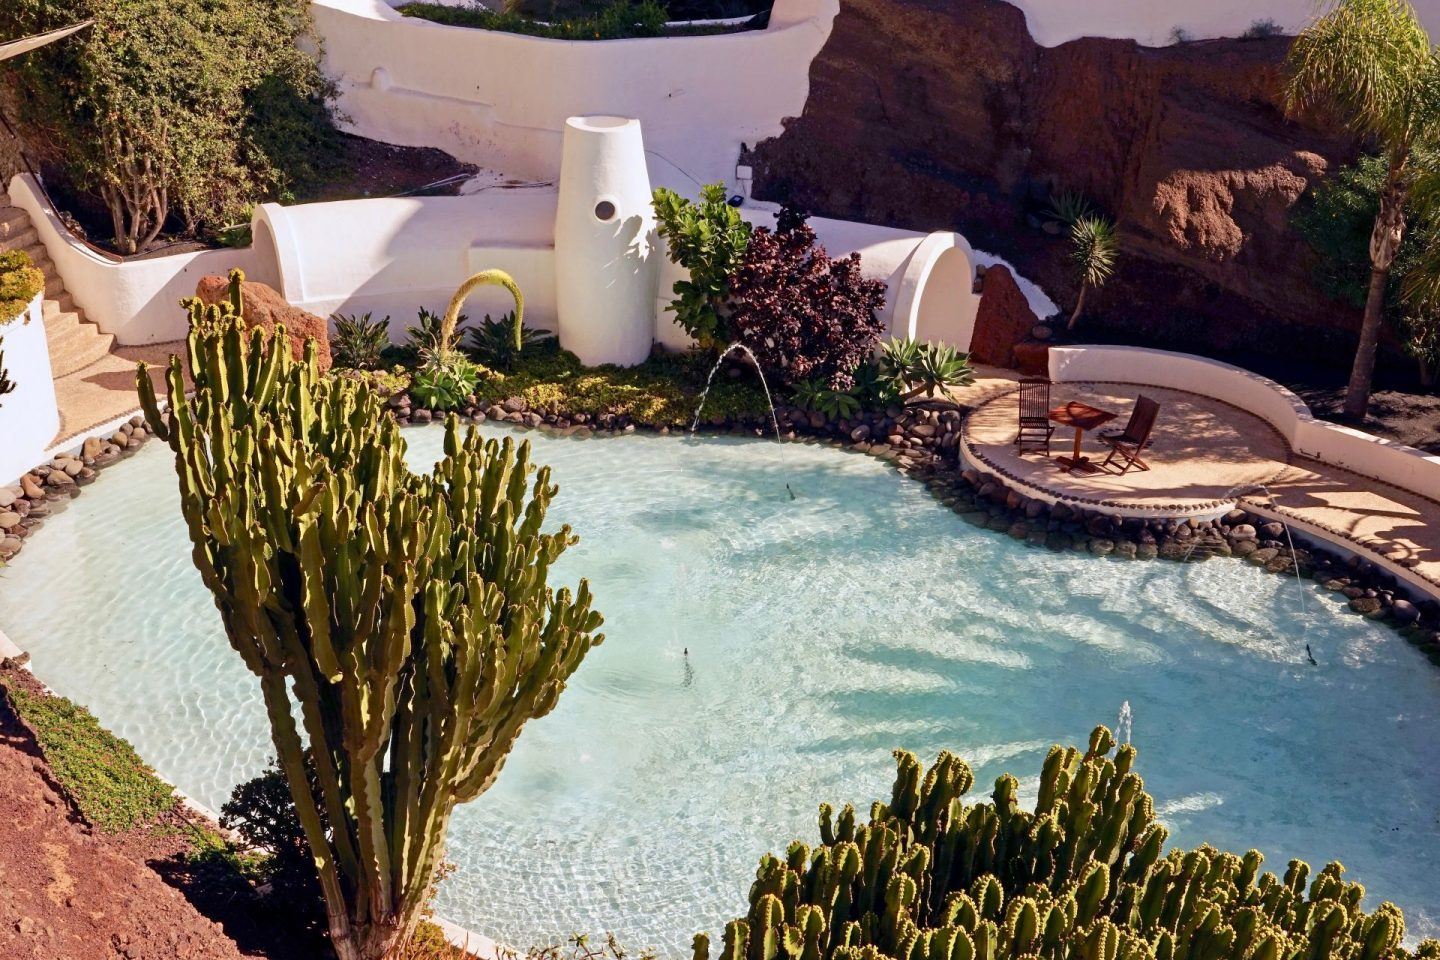 Museo Lagomar, one of the things to do in Lanzarote. Image shows a swimming pool surrounded by trees and plants, with white walls in the background and a small, circular patio.